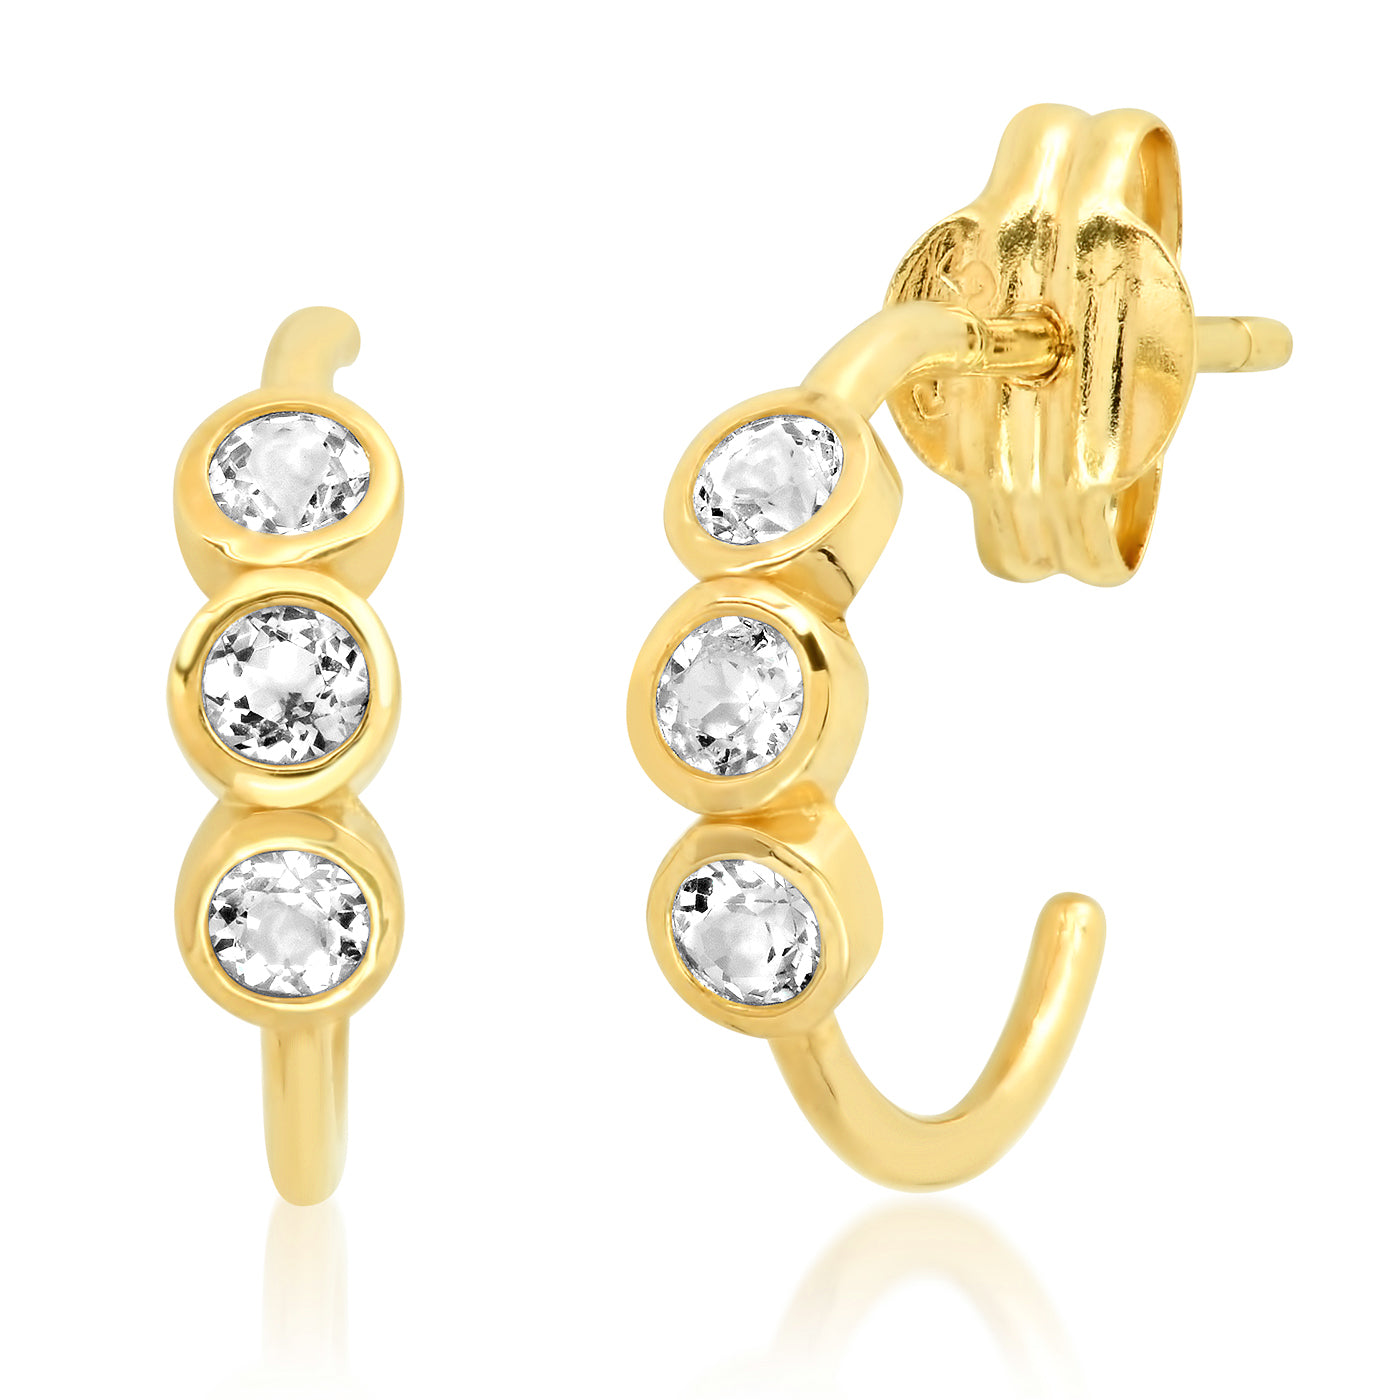 Tai Fine 14k Gold Hoop Earrings with White Topaz Accents